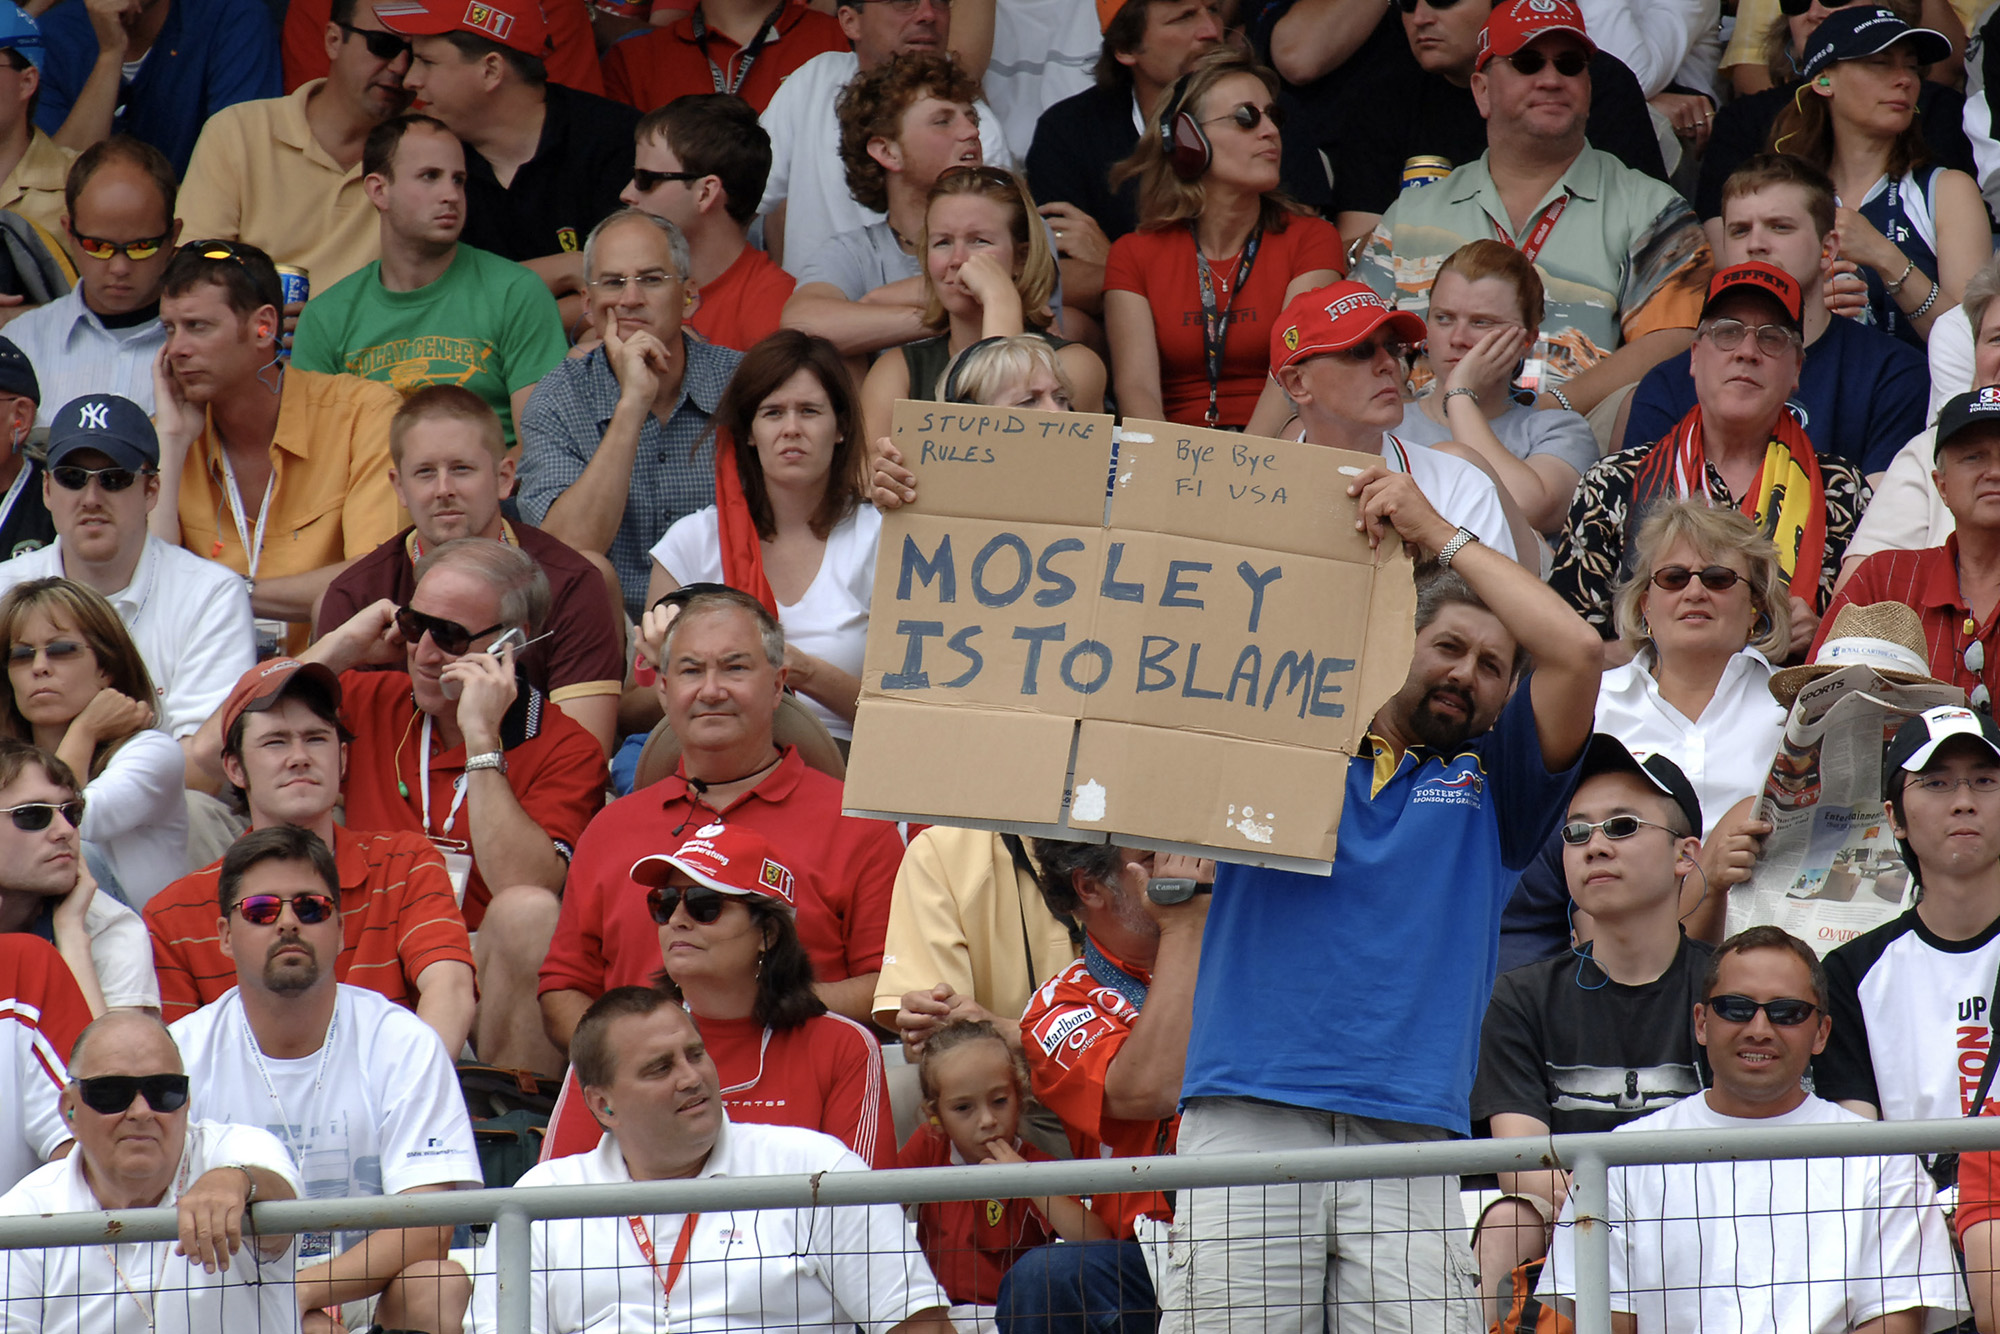 A fan holds up a Mosley is to blame sign at the 2005 United States Grand Prix